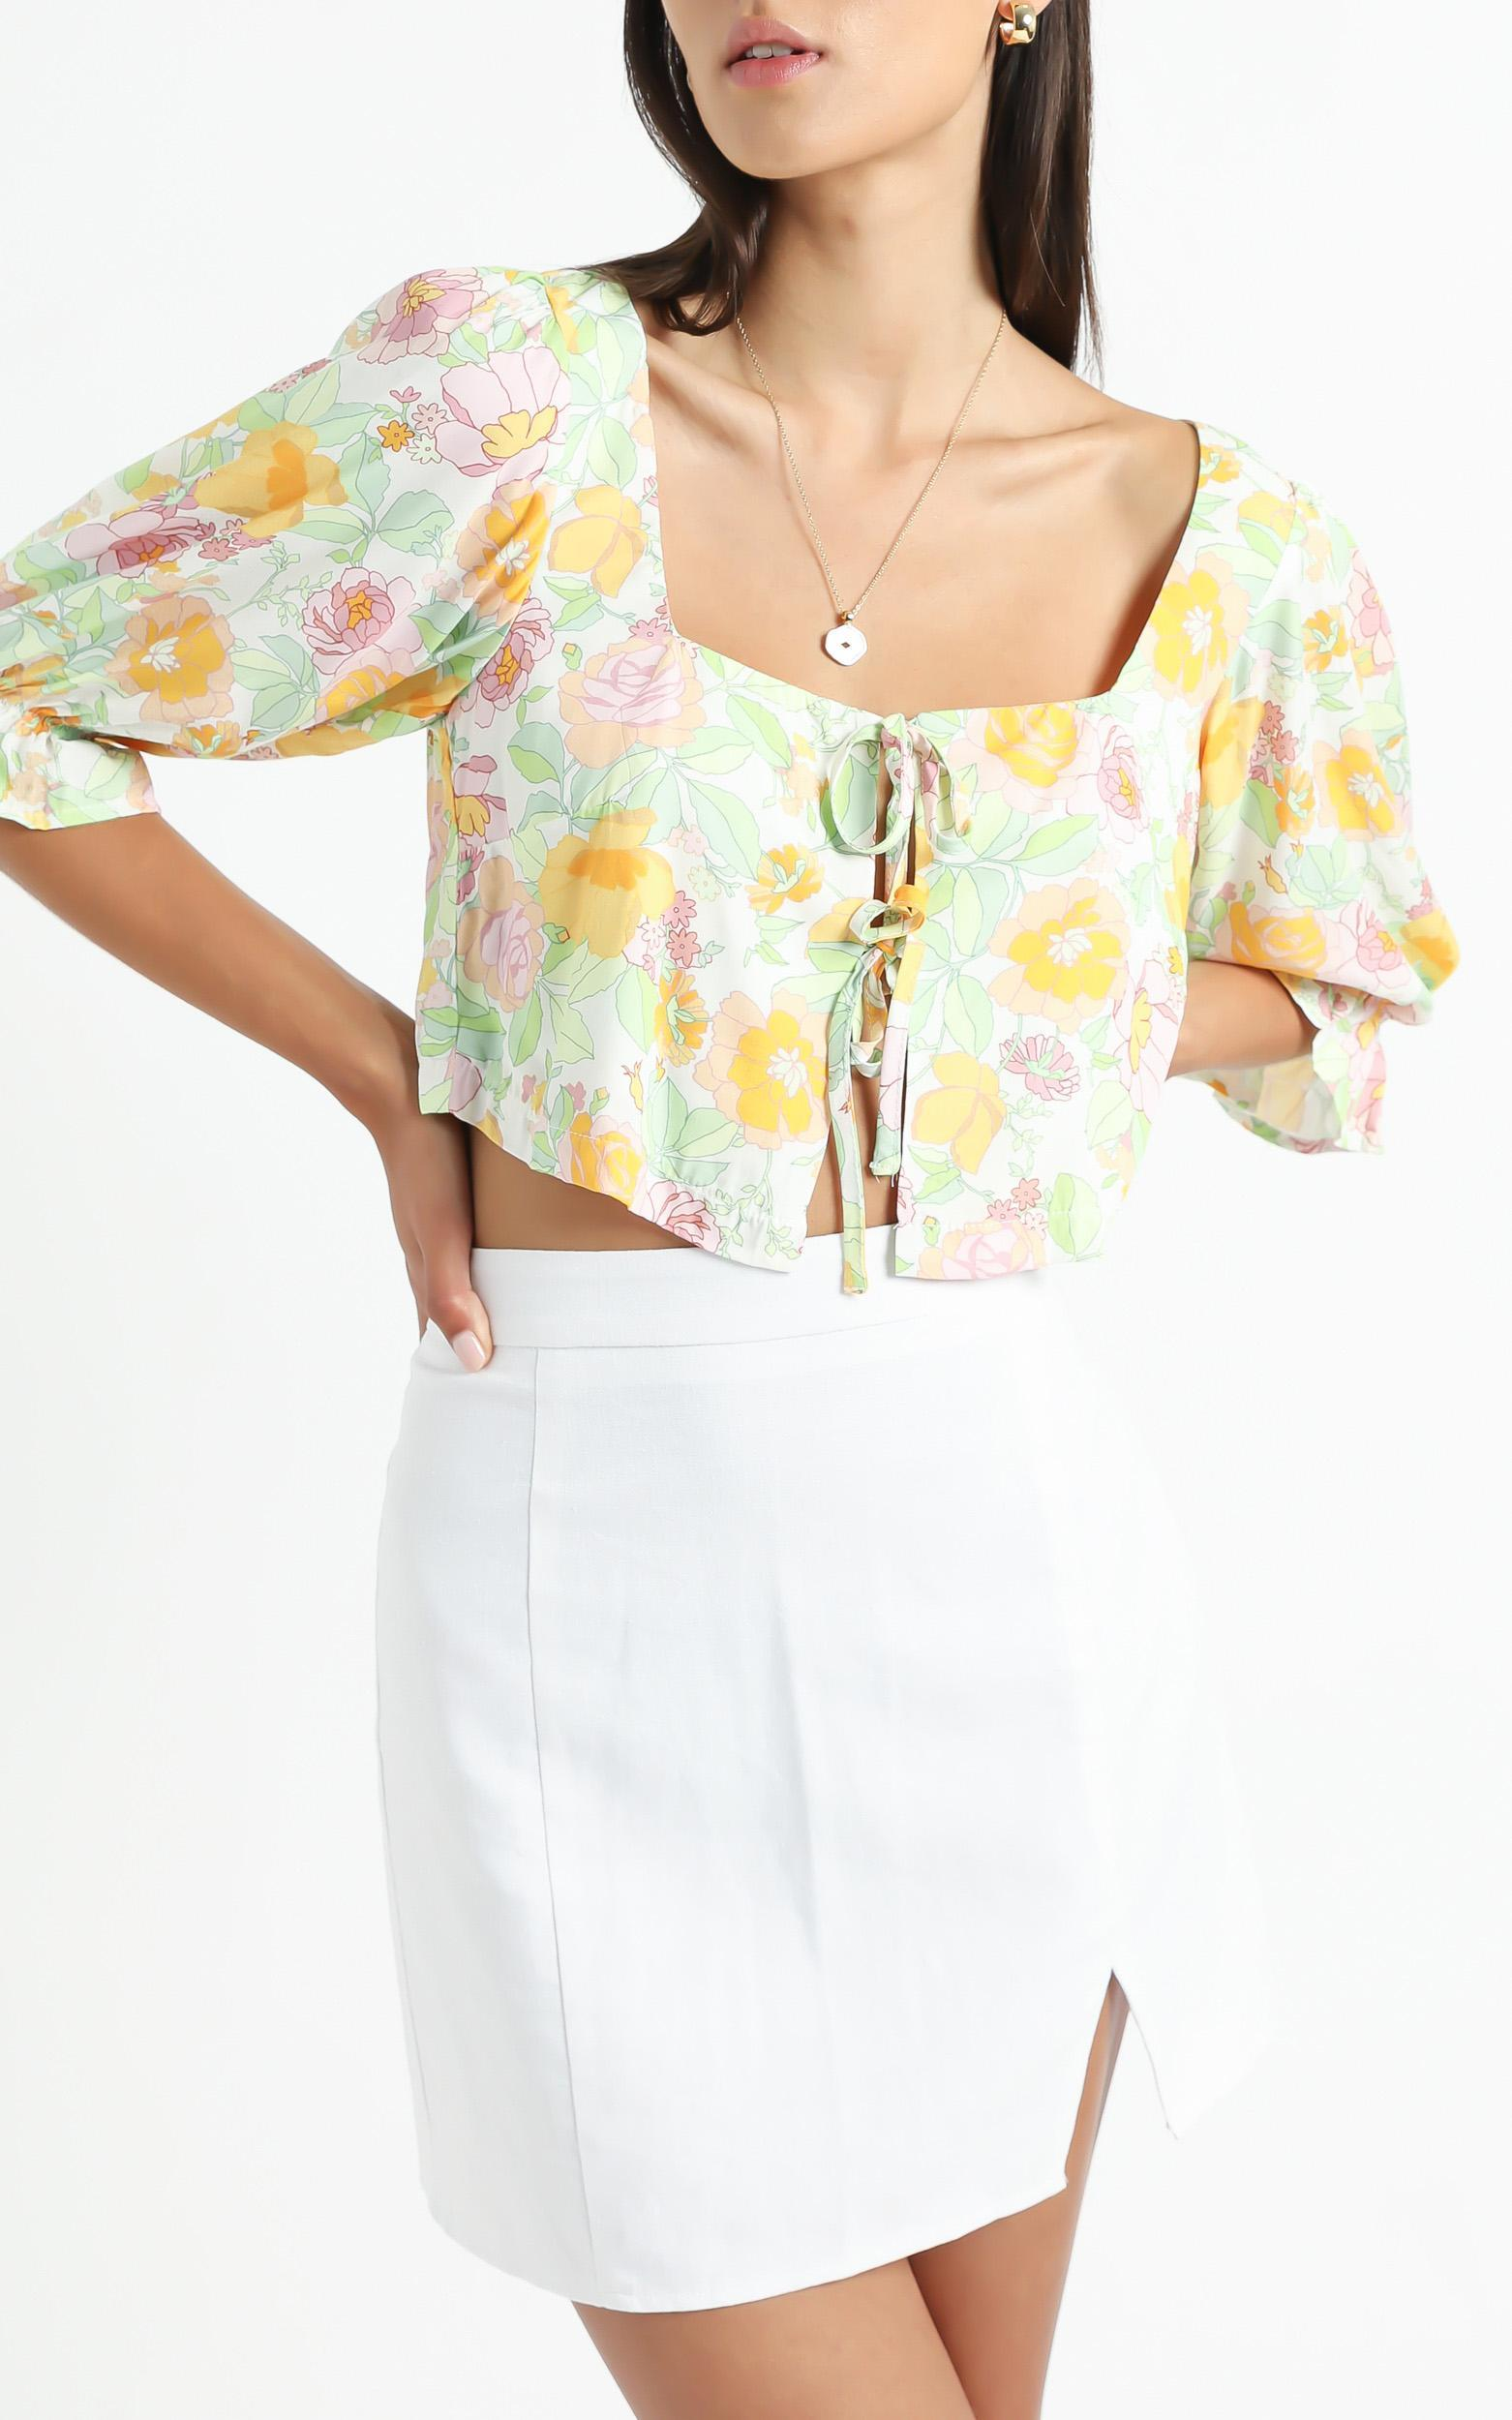 Kravia top in Linear Floral - 6 (XS), Multi, hi-res image number null